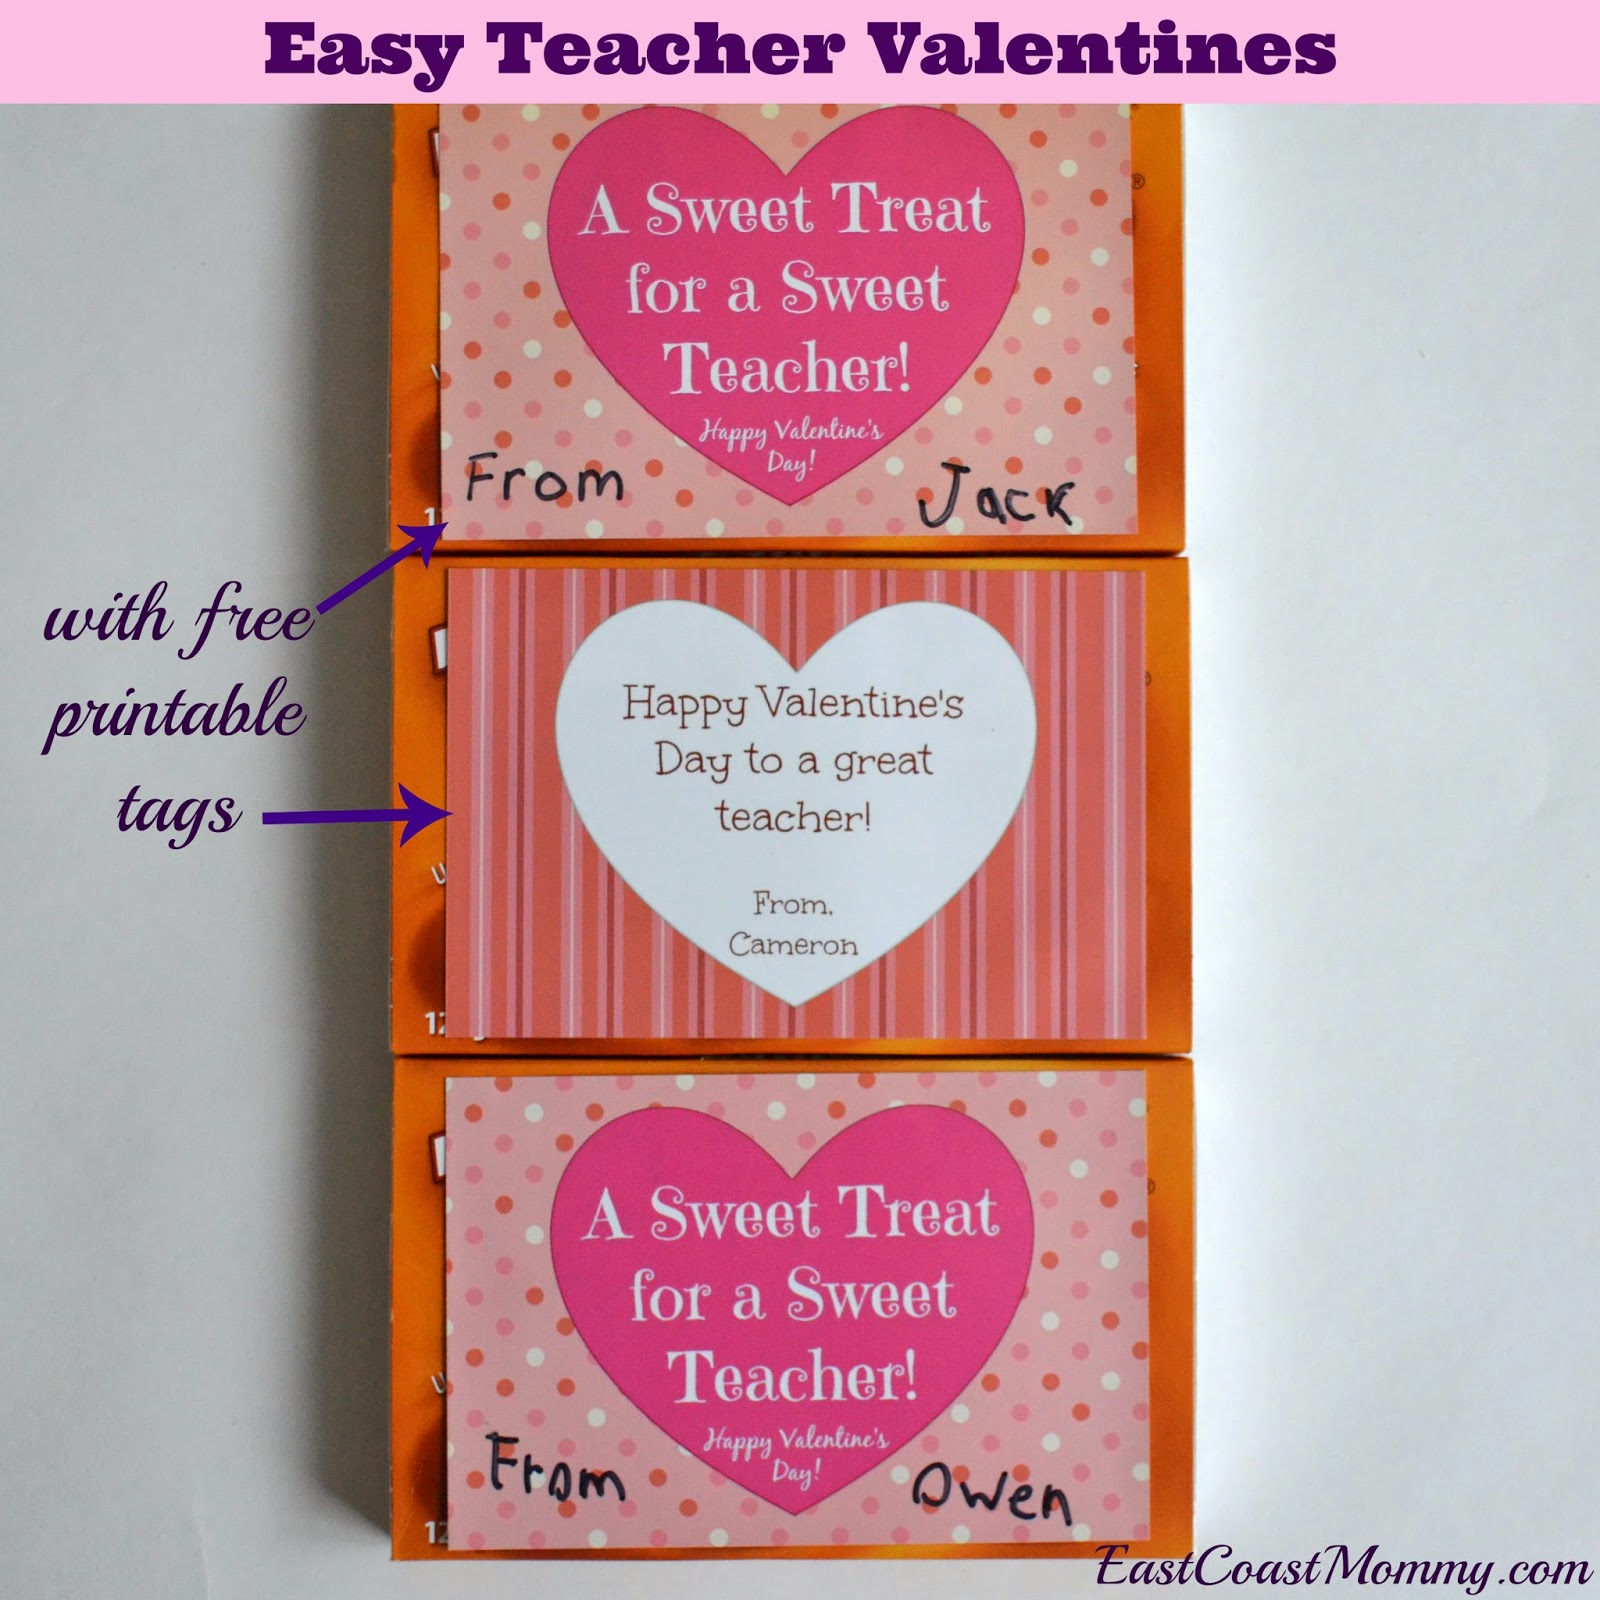 east coast mommy last minute teacher valentines with free printable tags - Valentines Pictures Free